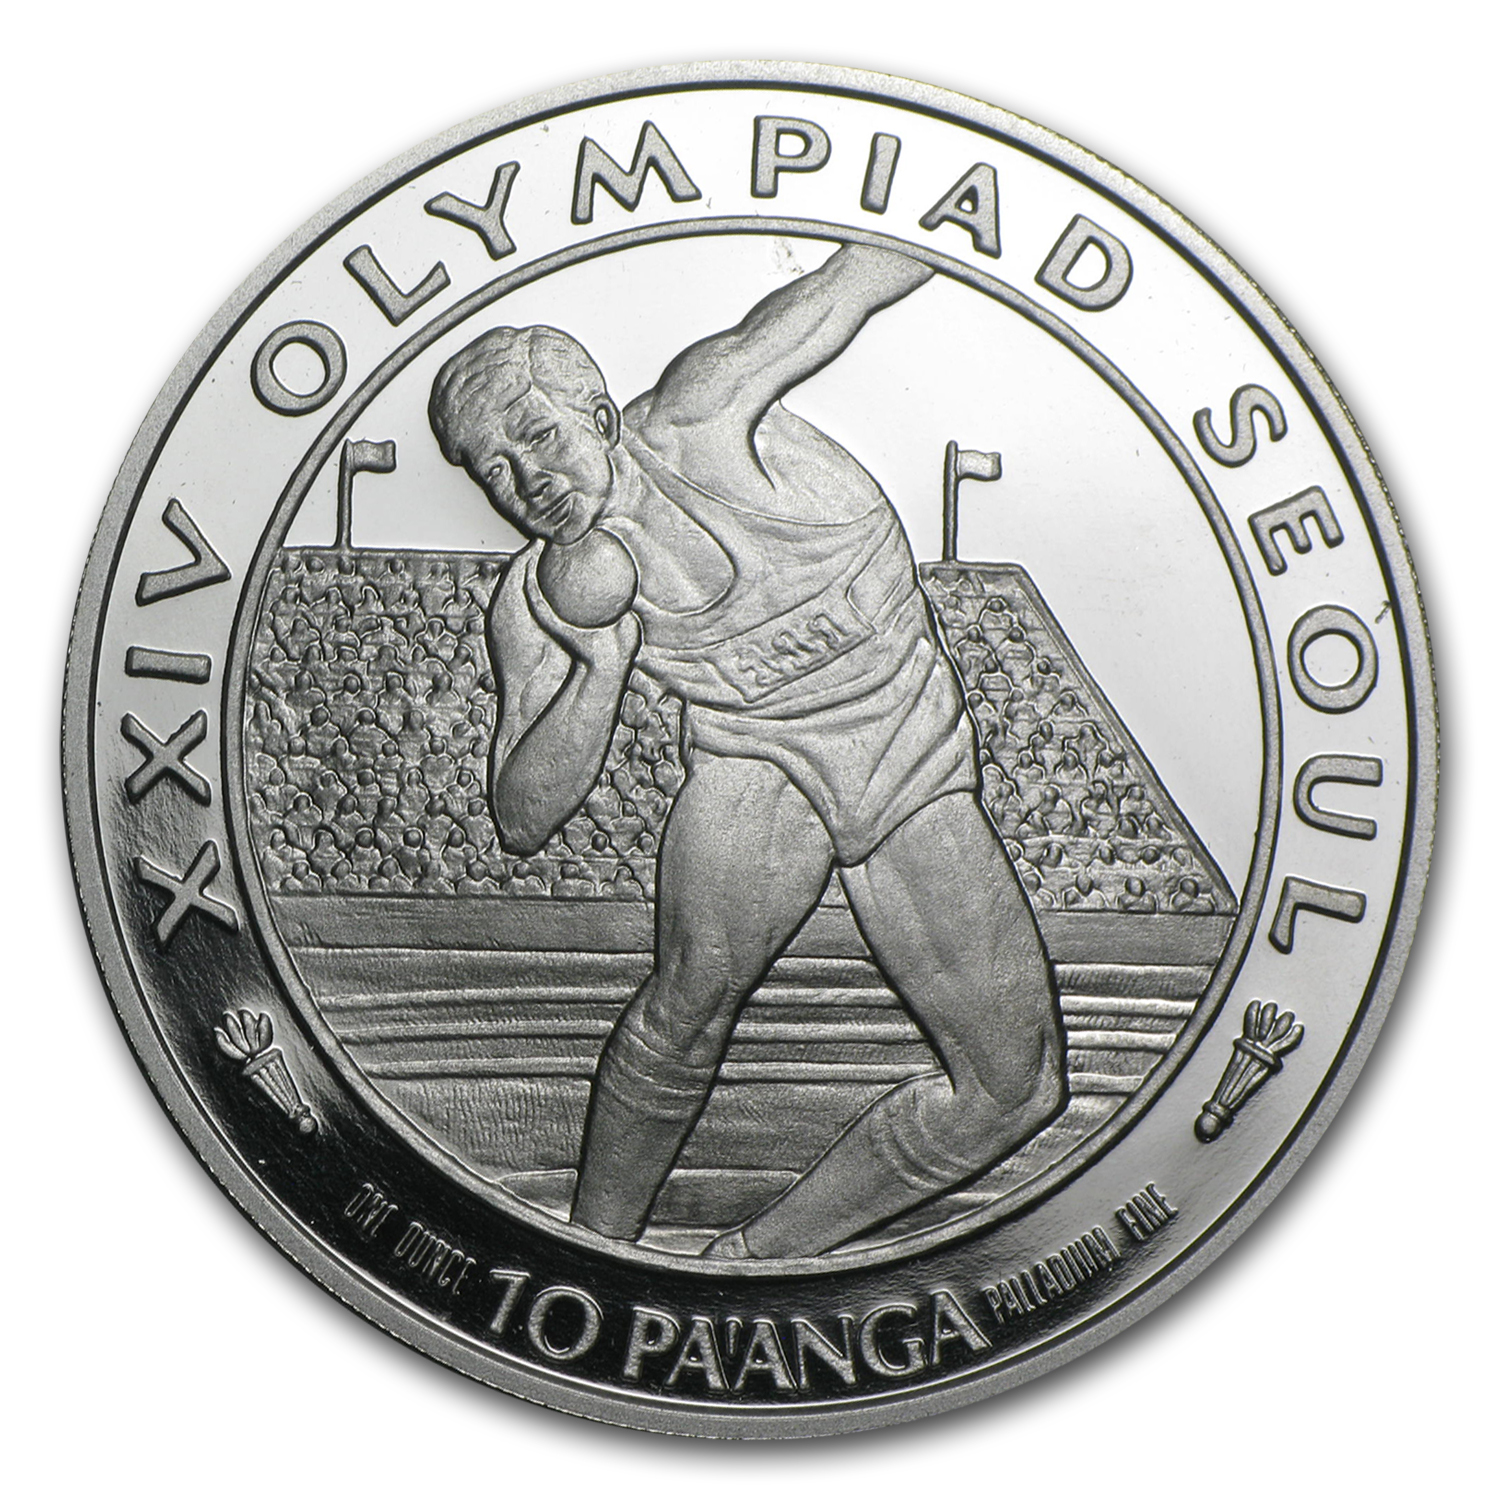 1988 1 oz 10 Pa'anga Palladium 10 Pa'anga (Proof)